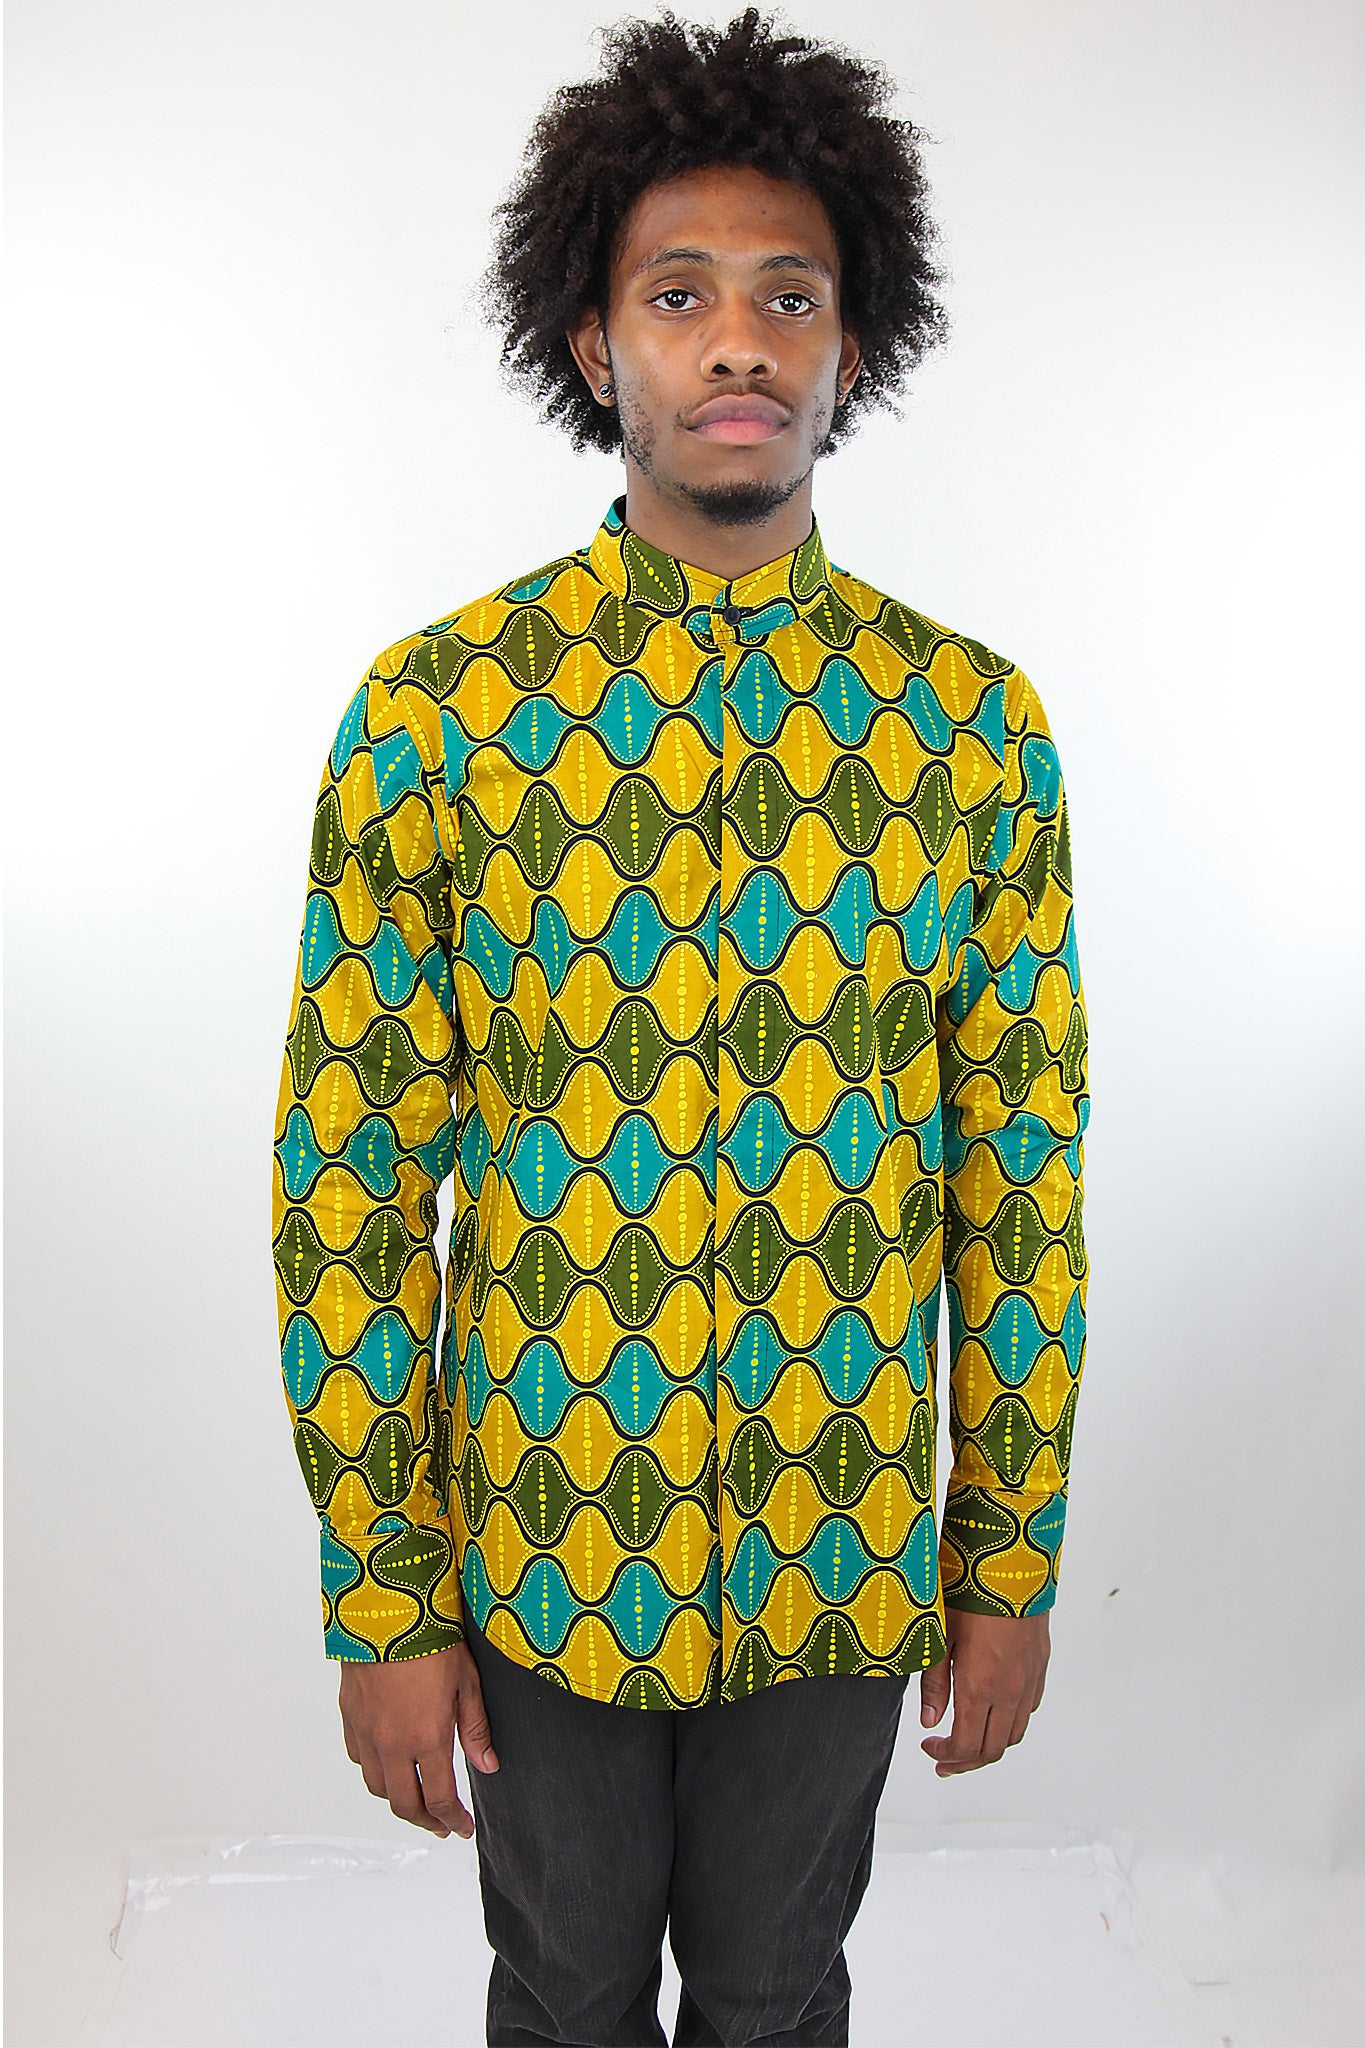 African Print Mens Shirt Button-Up Yellow Green and Blue Shirt - Africas Closet